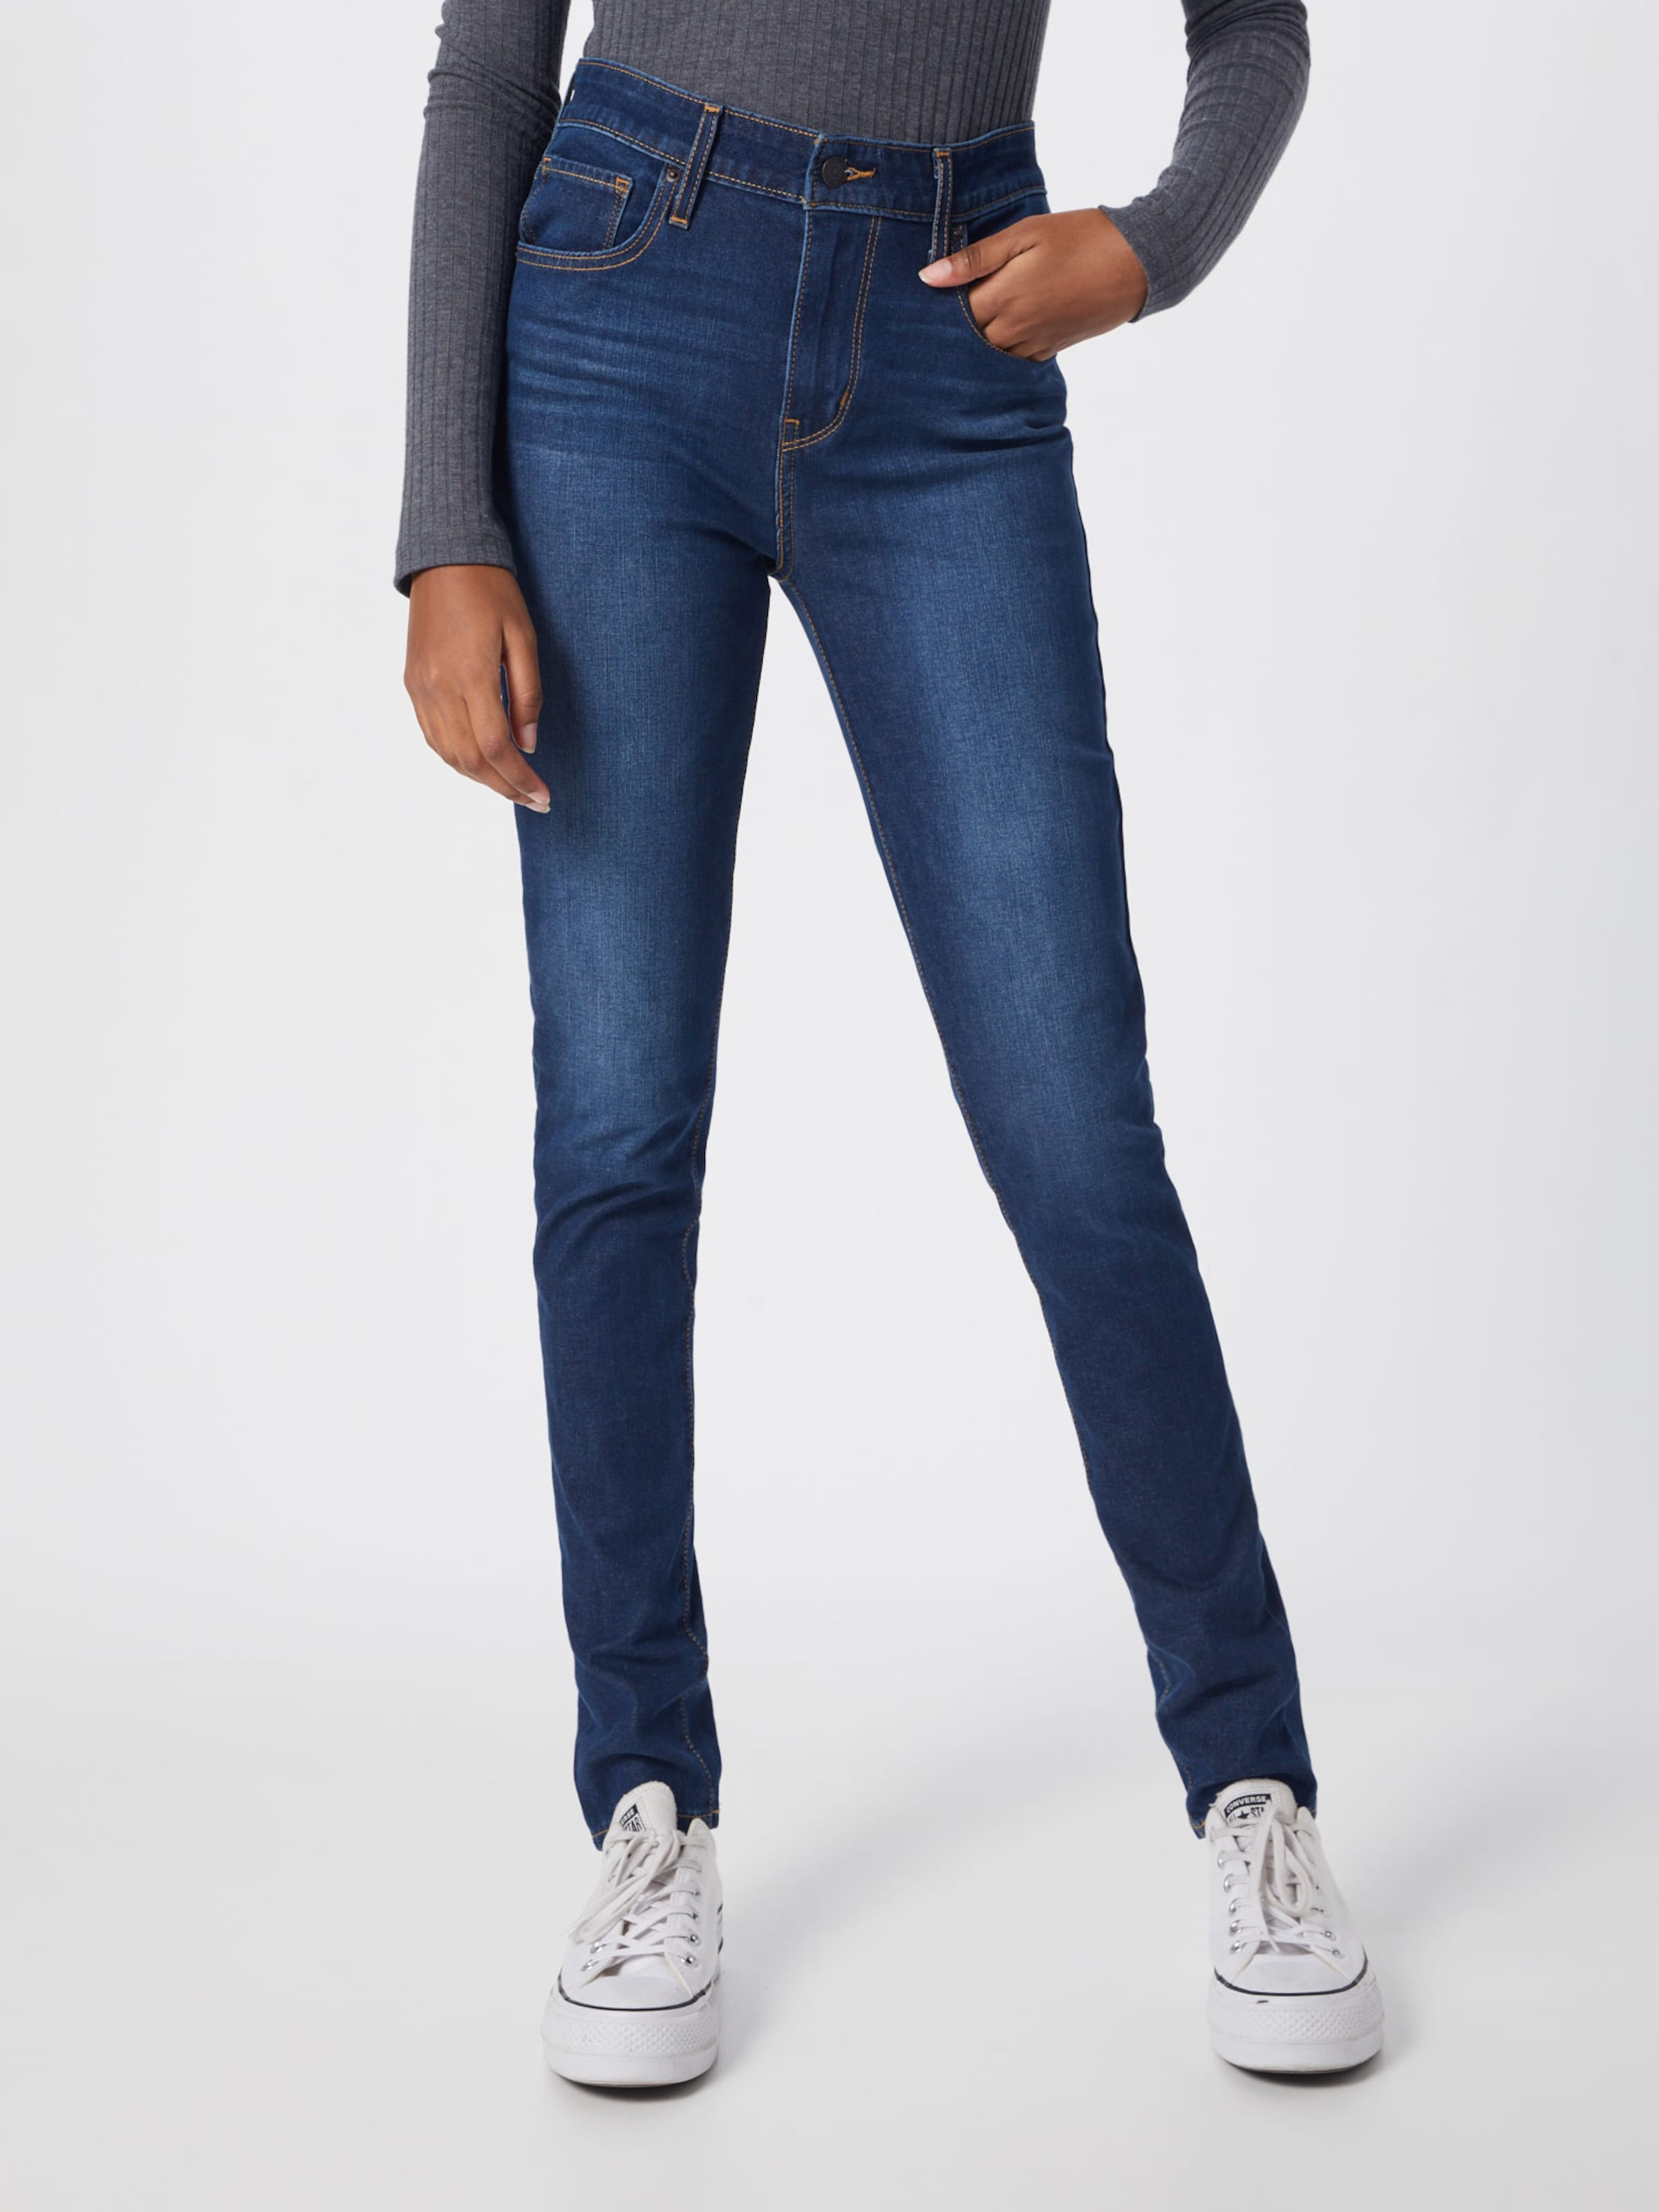 high Blue In Rise' Levi's '721� Denim Jeans ukXiTOPwZ